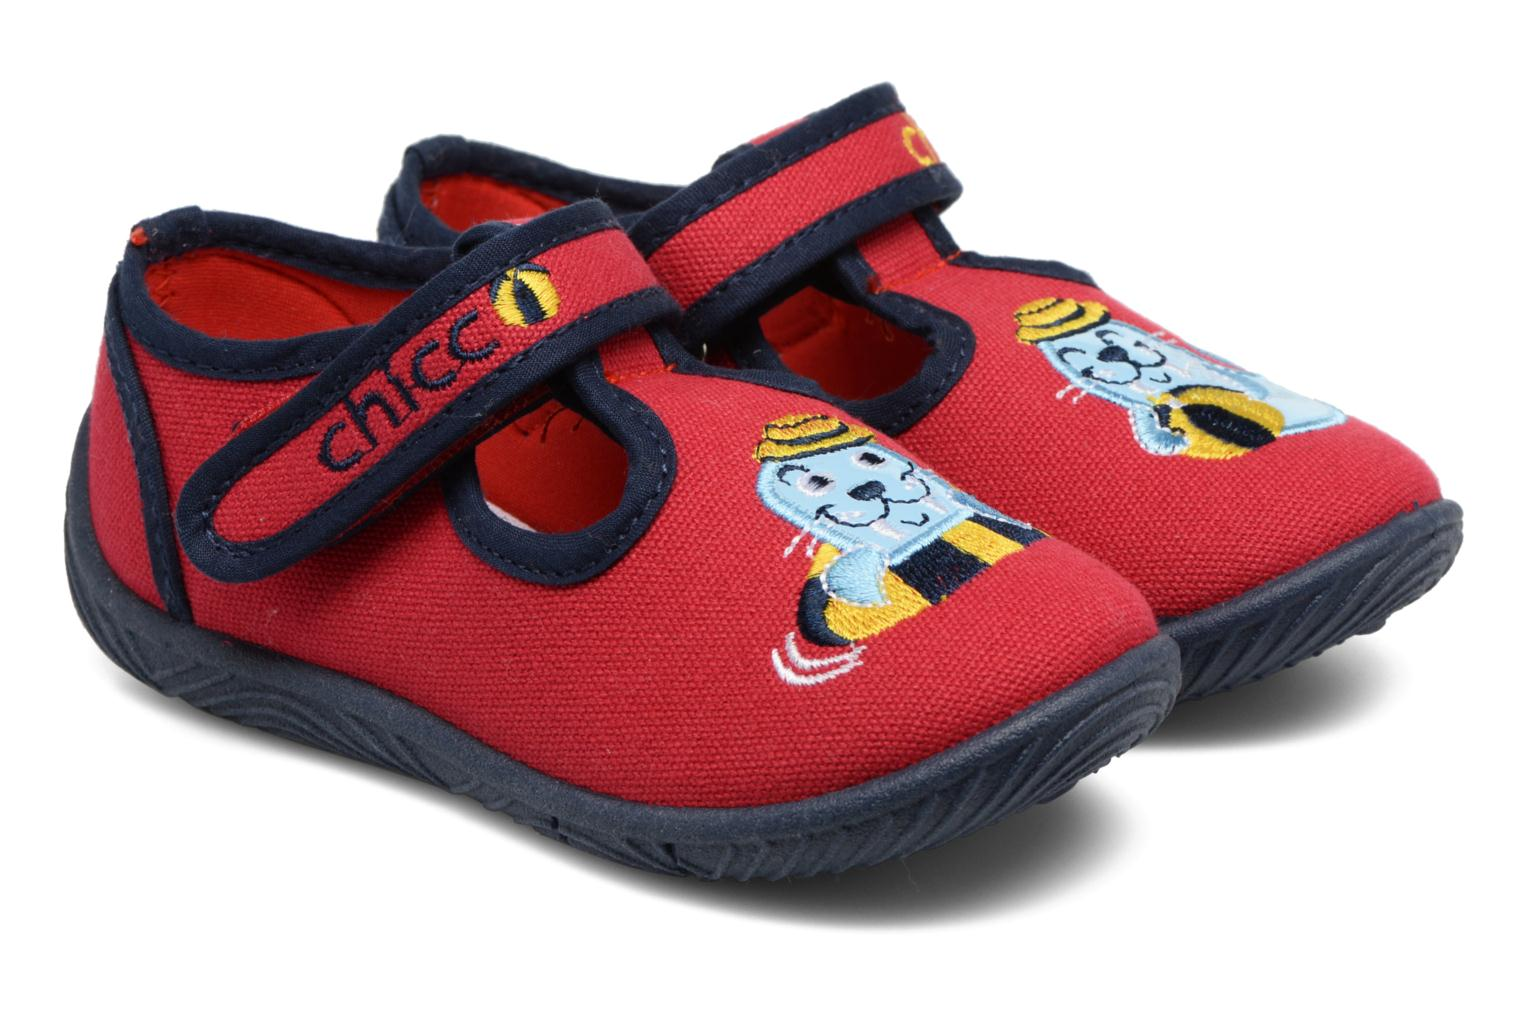 Pantoffels Chicco Rood